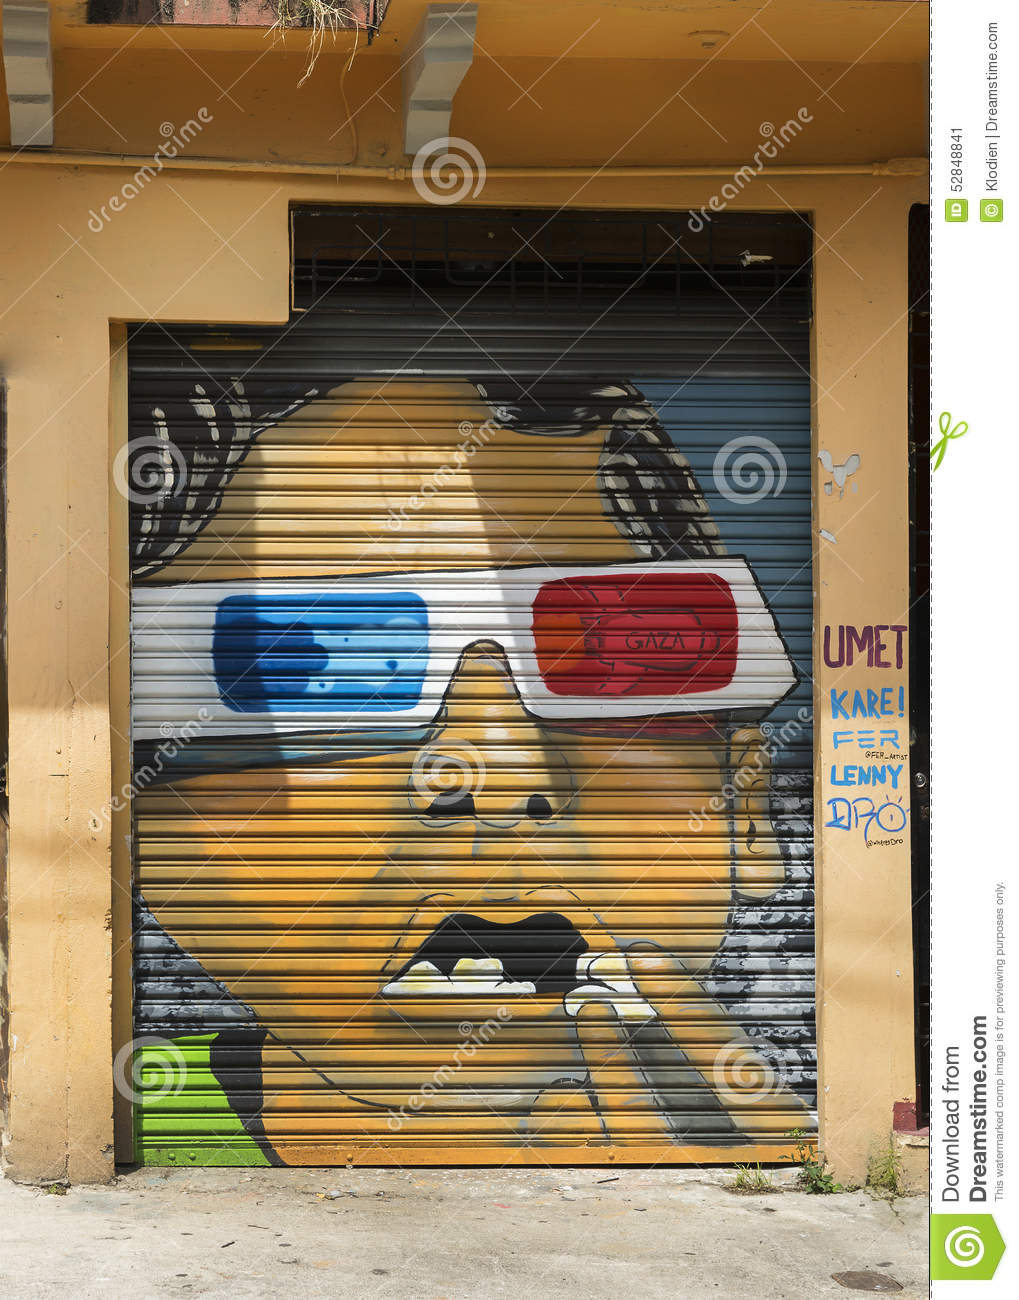 Graffiti of face with 3d glasses